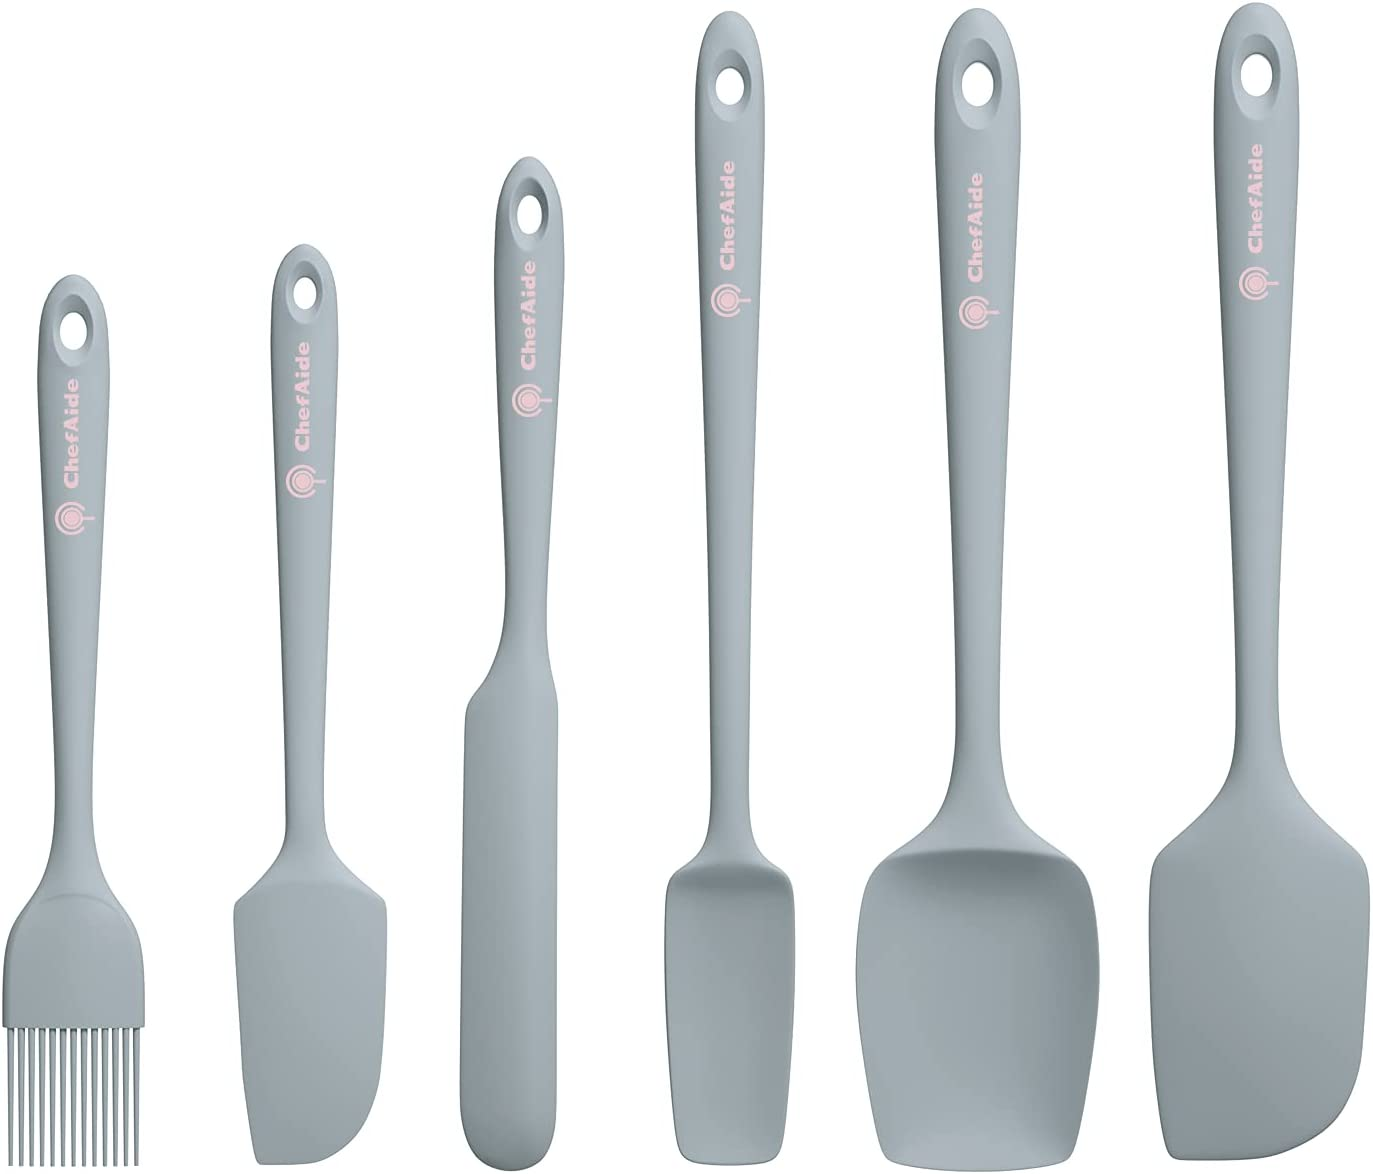 ChefAide 6 Pieces Food Grade Heat Resistant Silicone Spatulas Set Non-stick Rubber Scraper with Seamless One Piece Design for Cooking, Baking, Mixing,Kitchen(Gray)